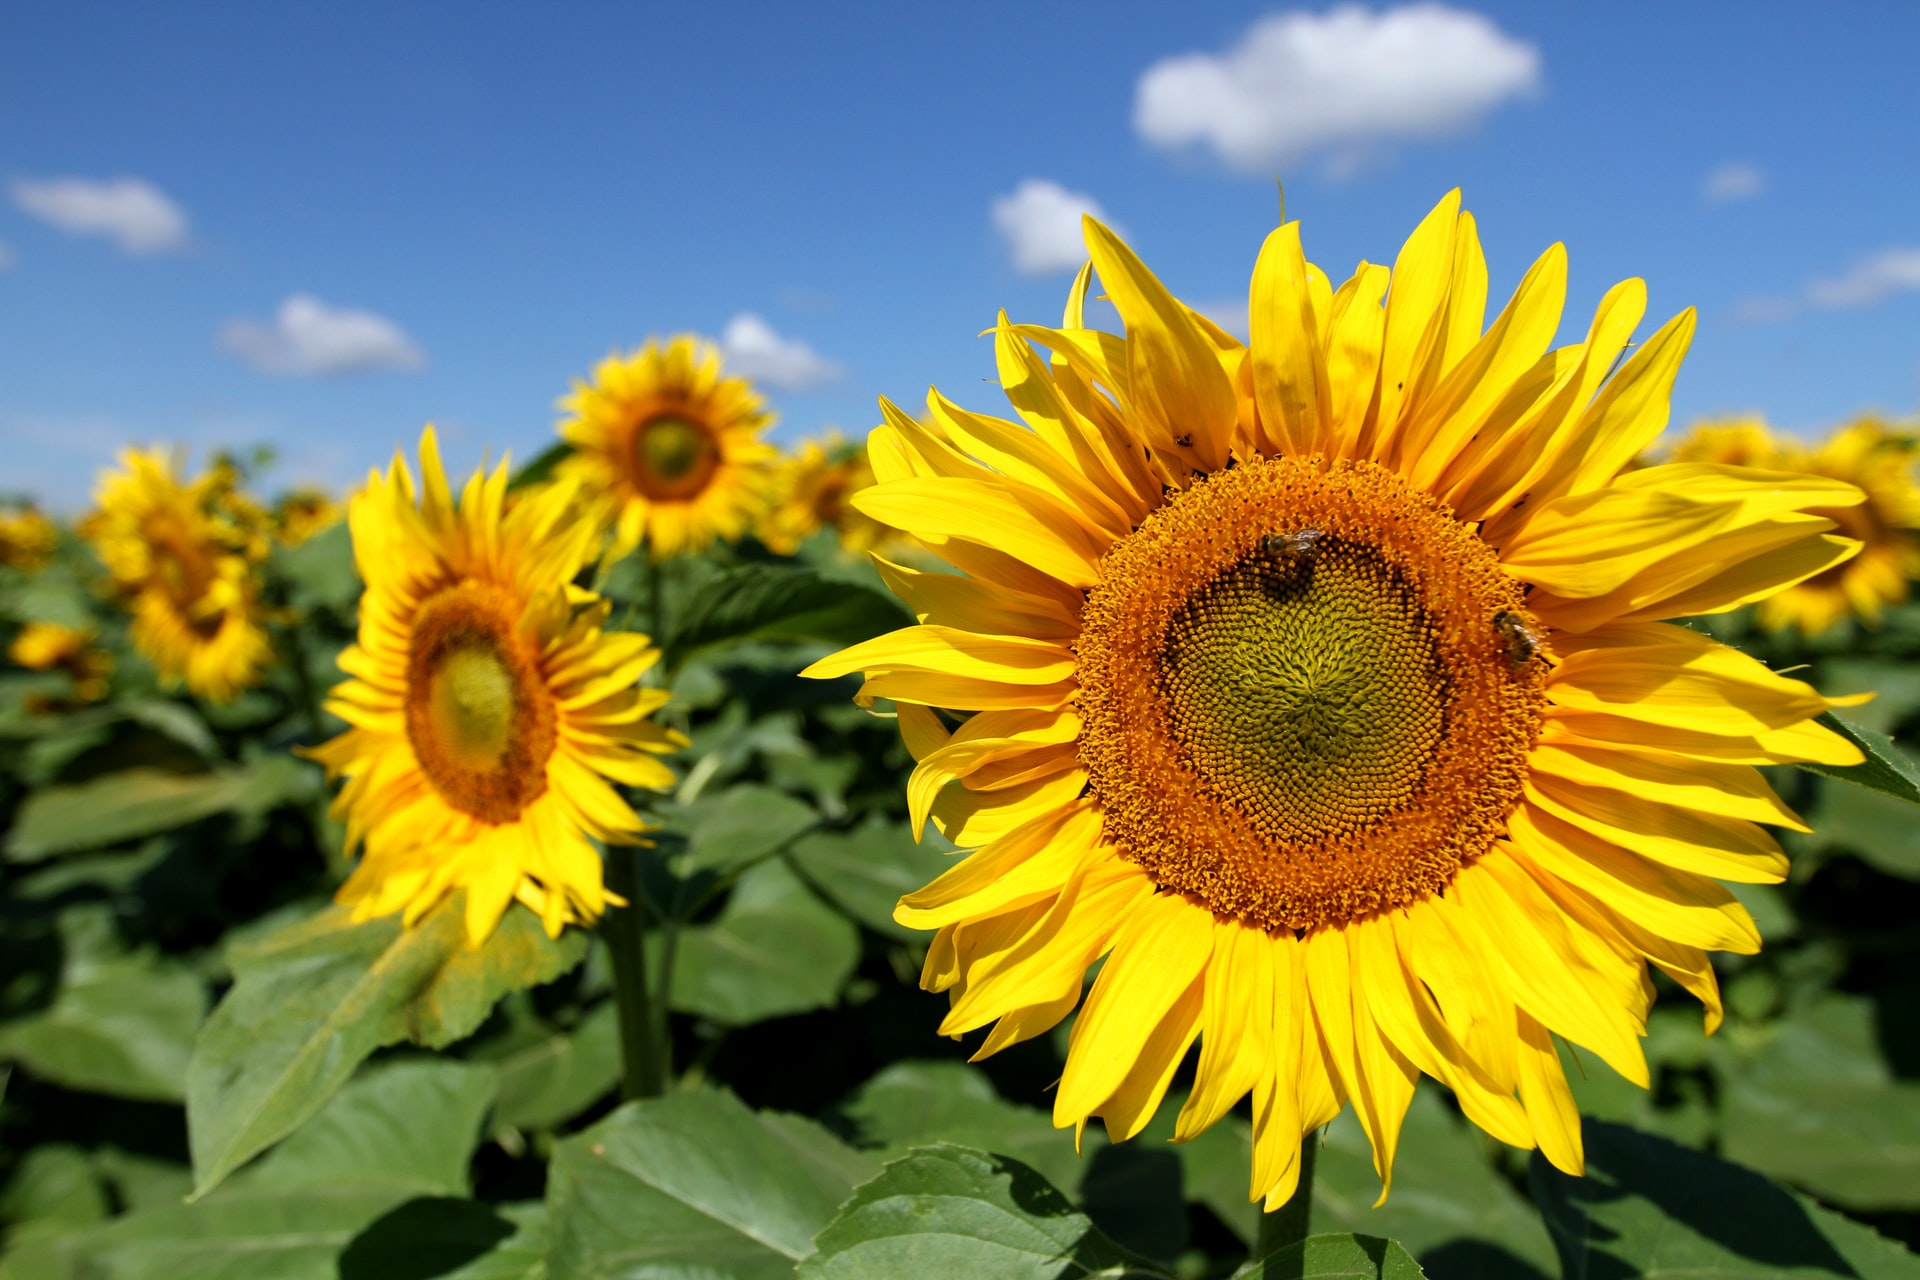 How to grow sunflowers in 4 steps